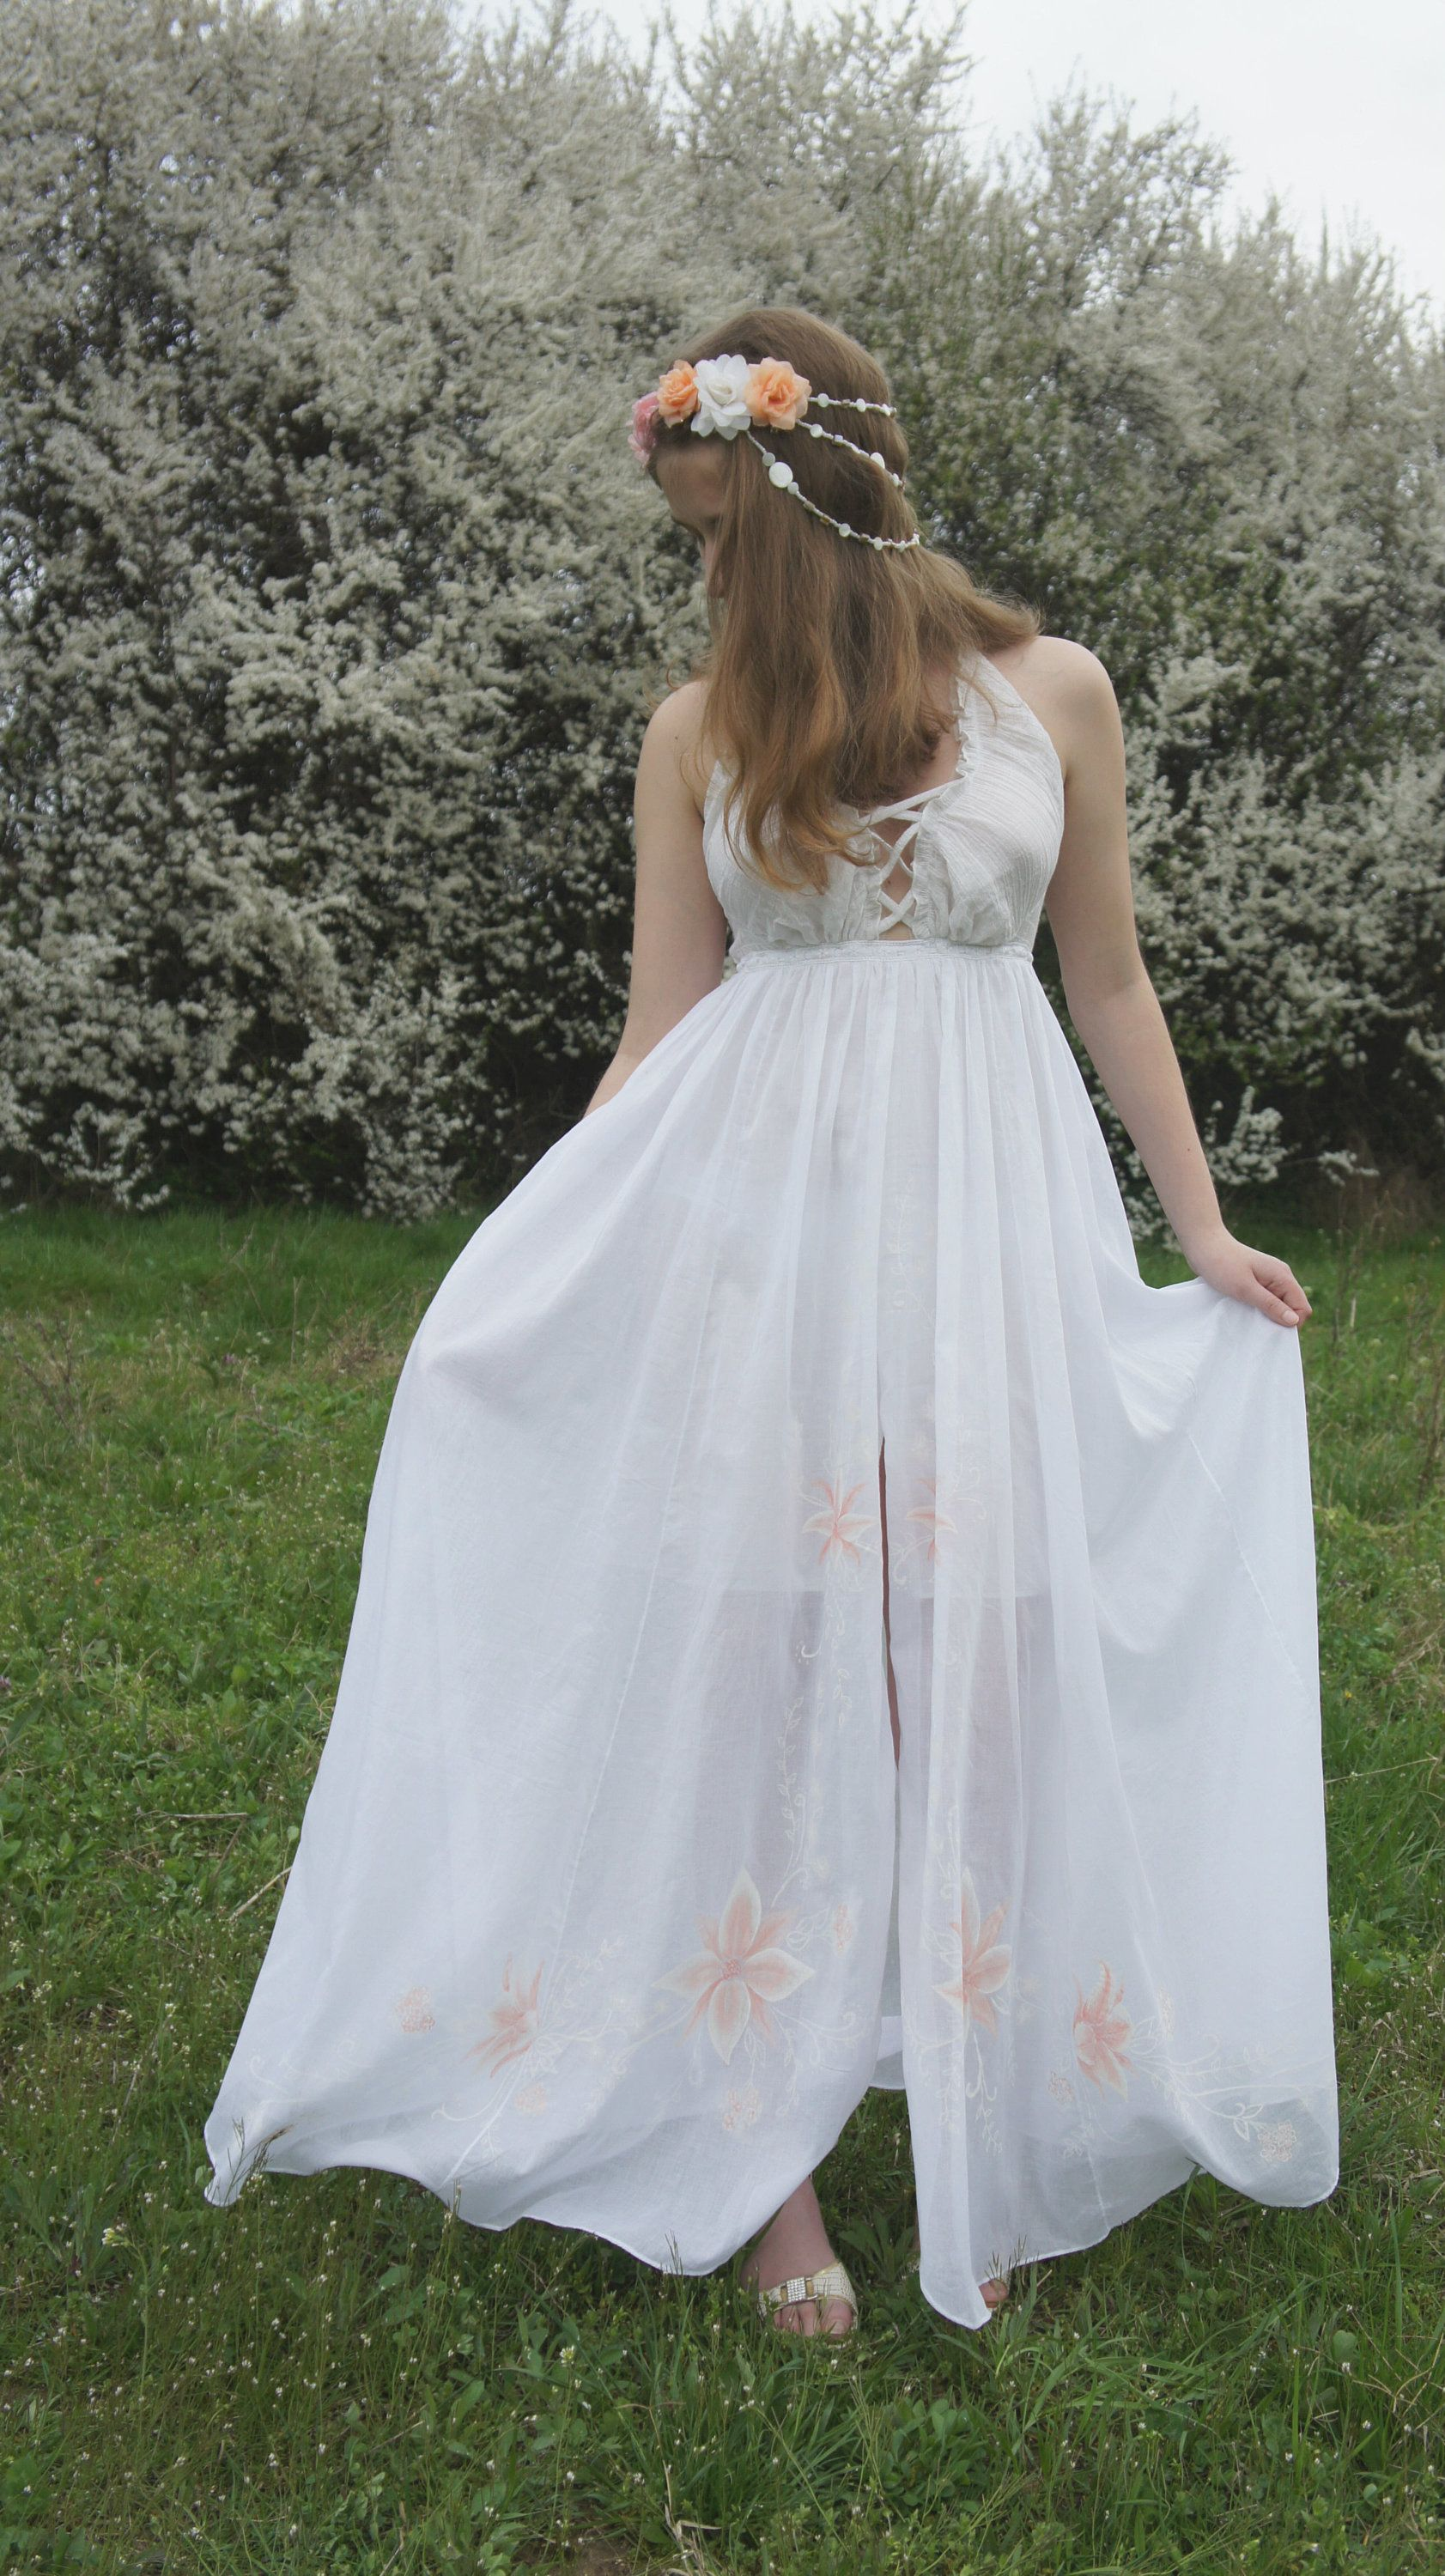 Rustic wedding dress boho wedding dress hand painted dress